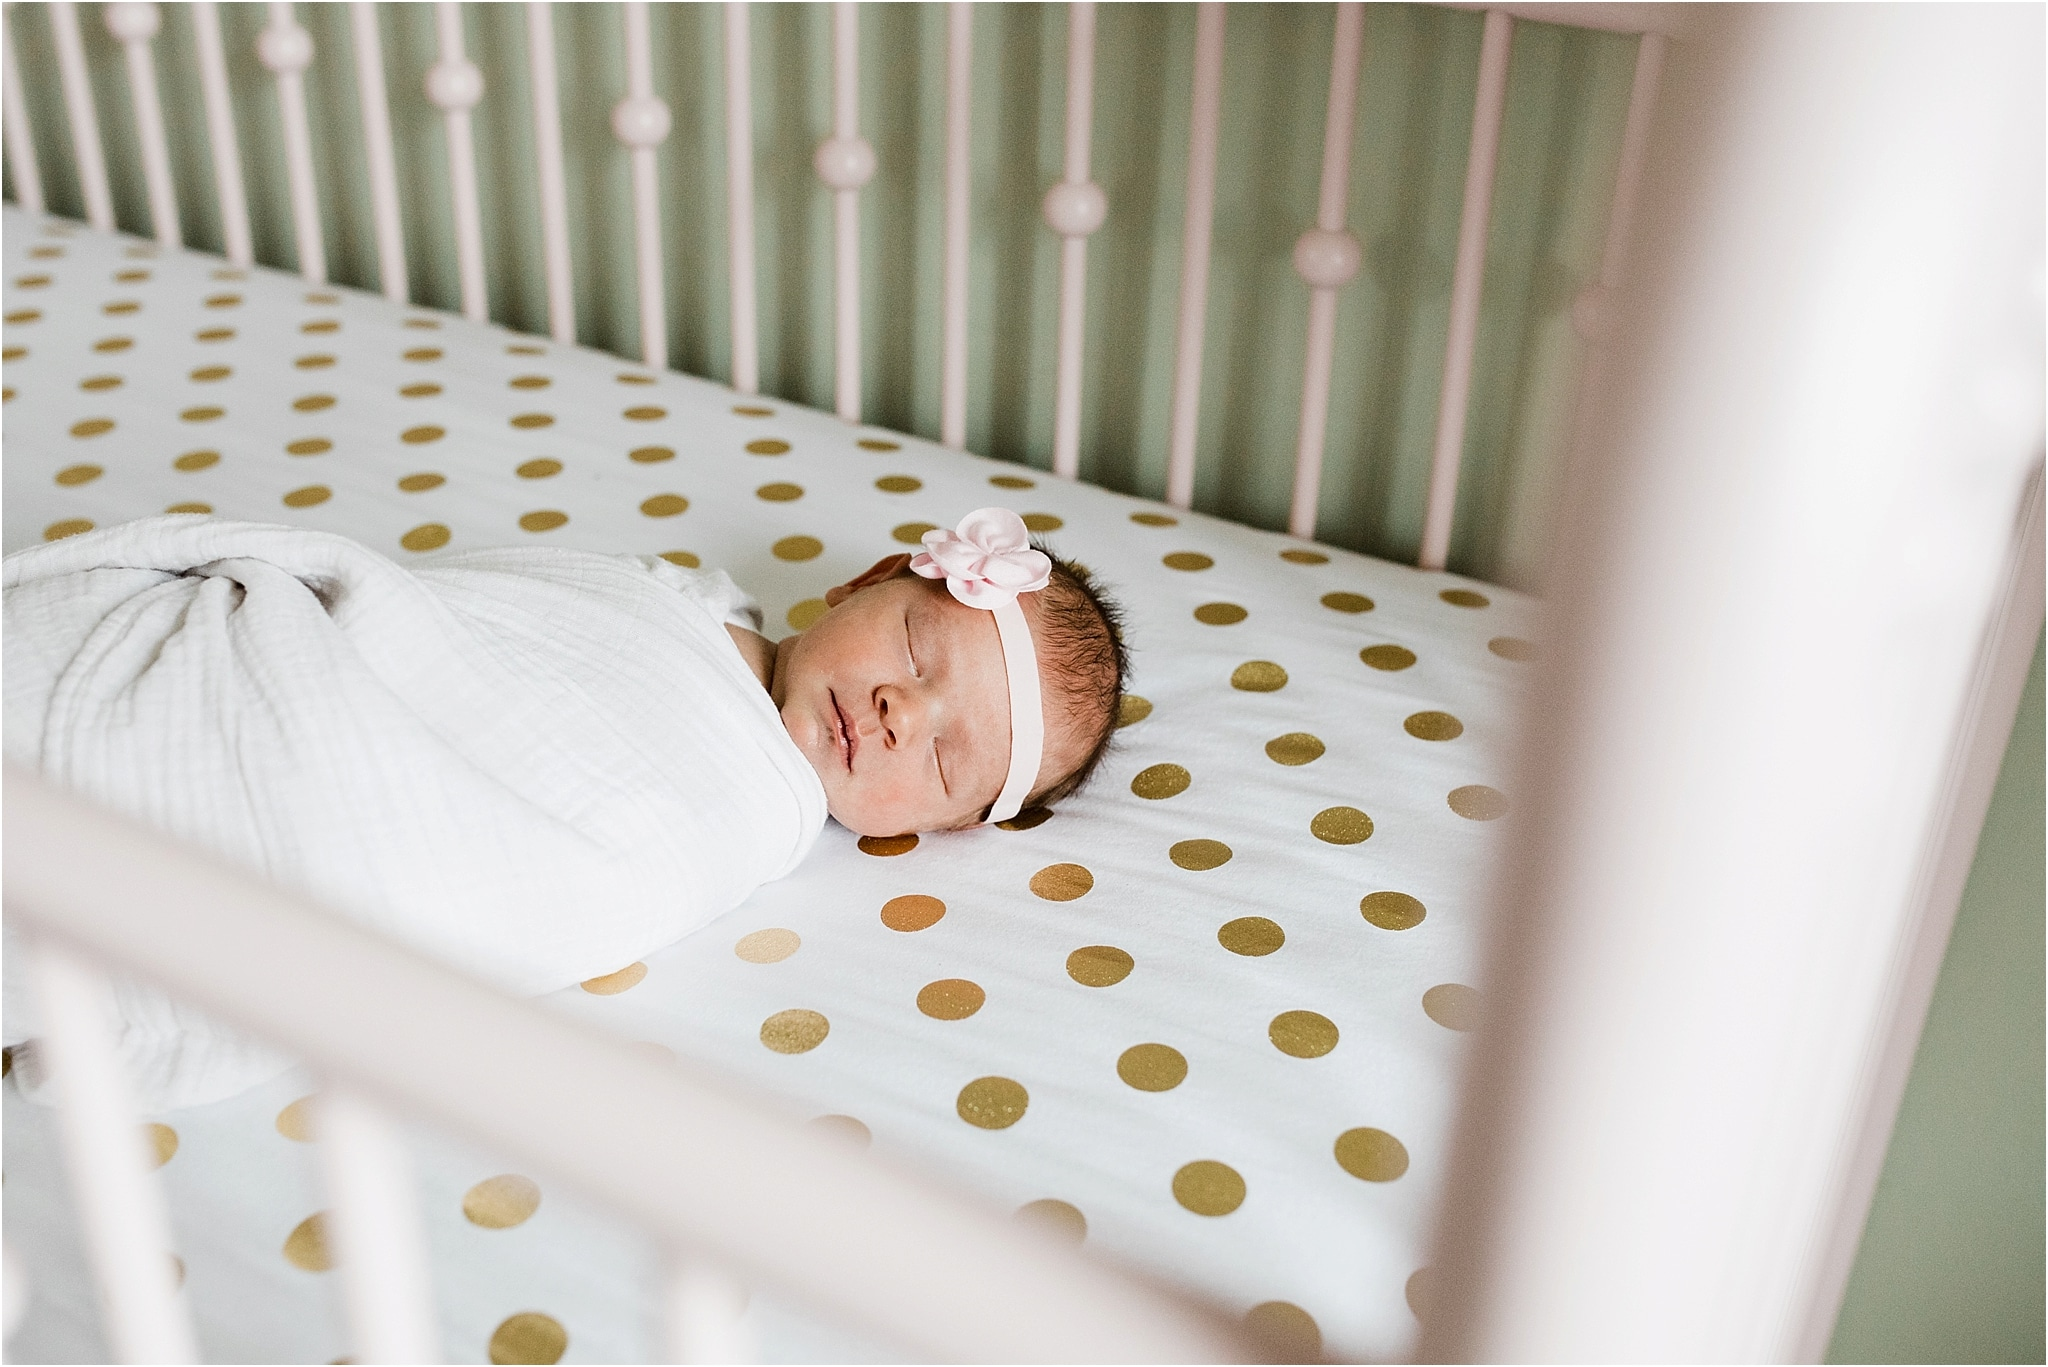 newborn sleeping in pink crib with gold polka dot sheets